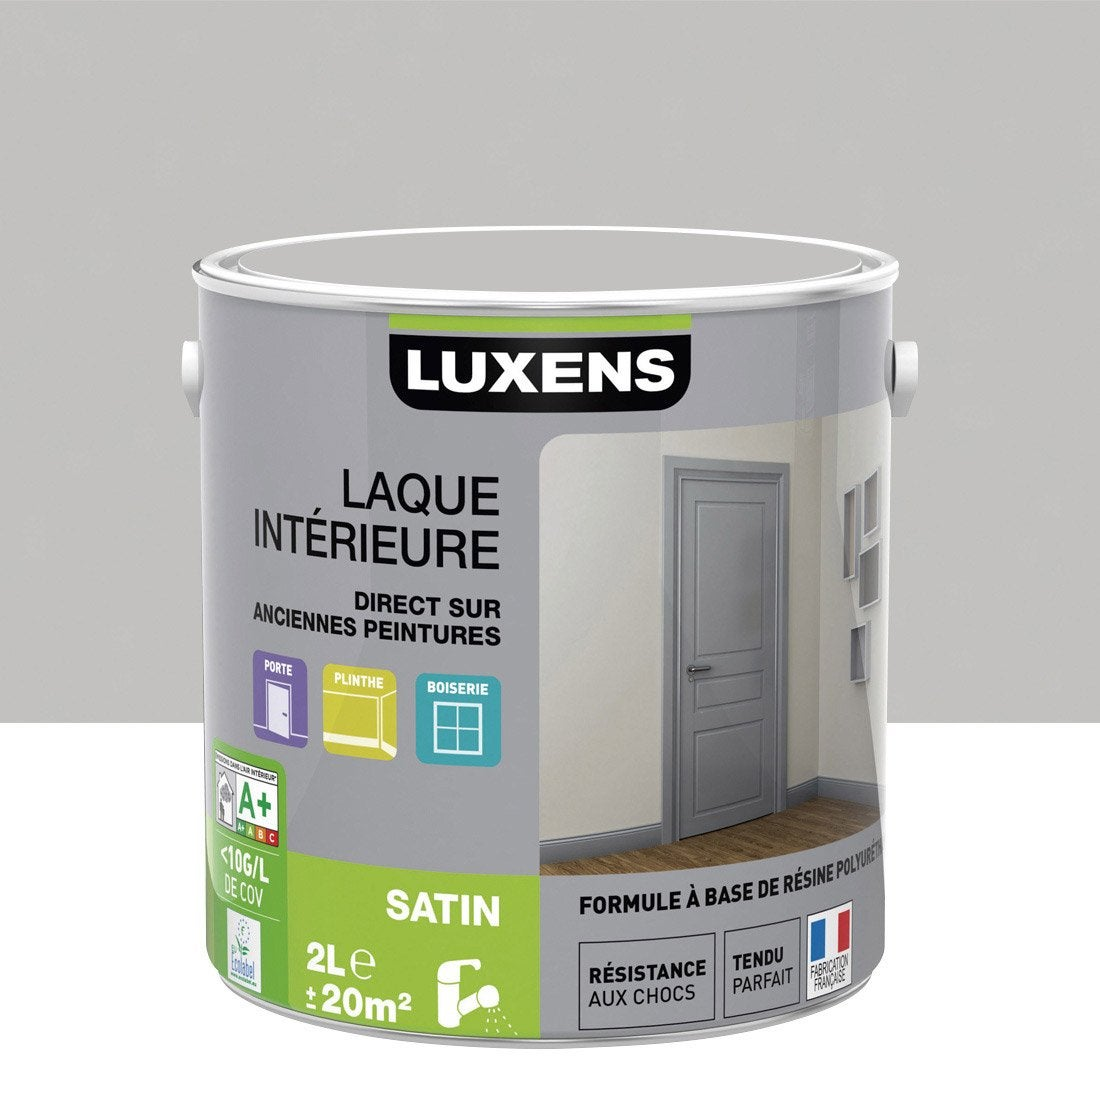 Peinture multisupports Laque satin LUXENS, gris galet n°5